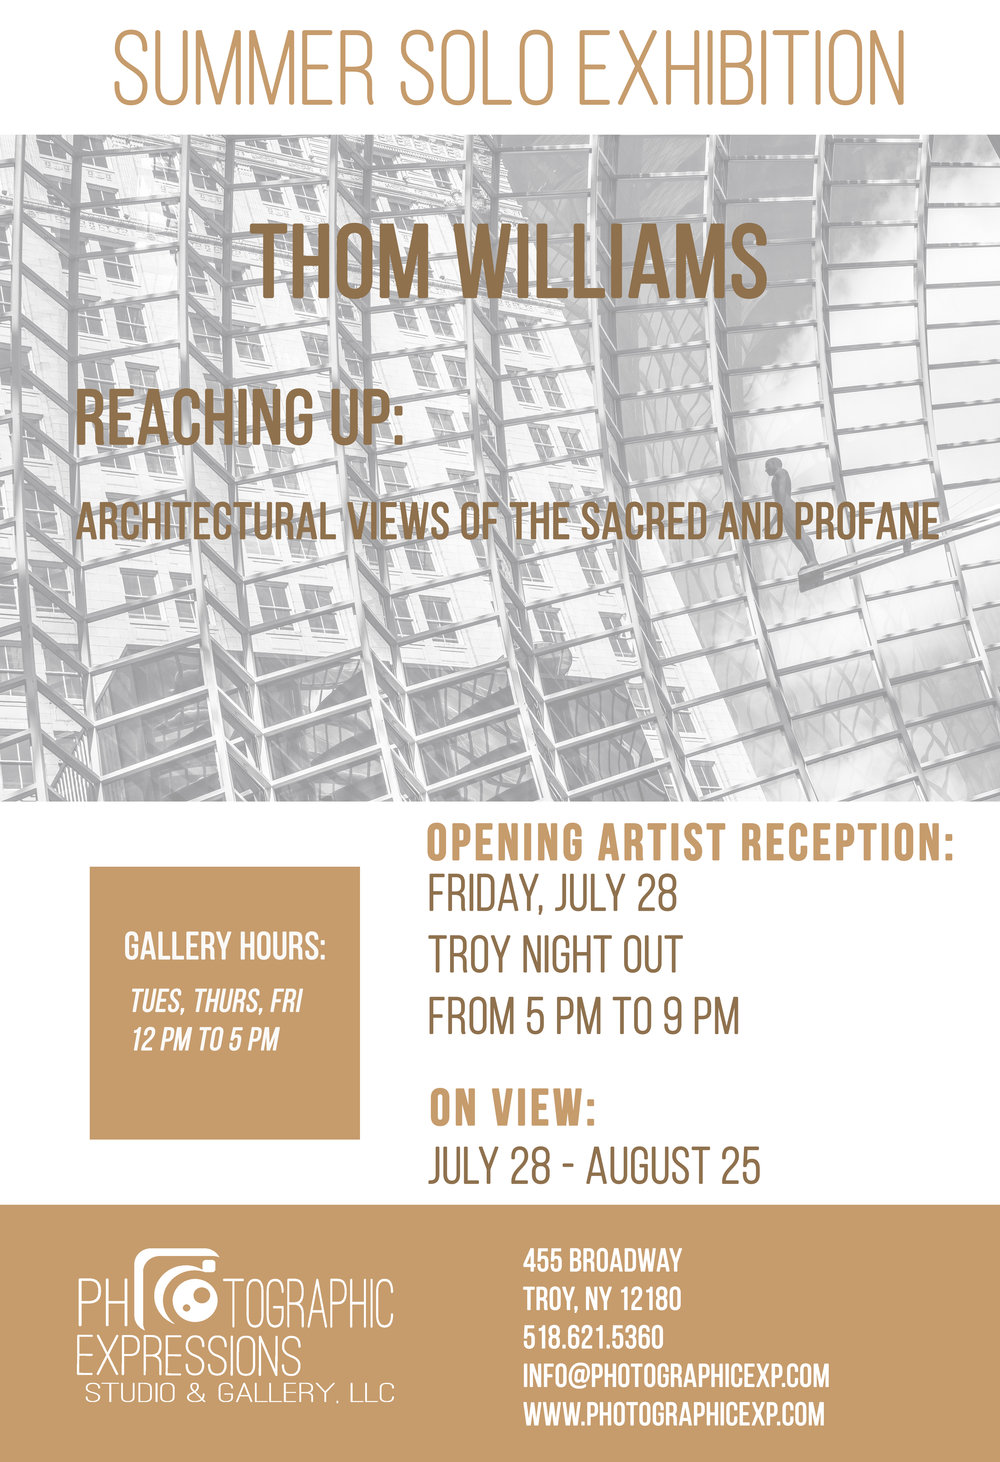 SUMMER SOLO EXHIBITION: Thom Williams, Reaching Up: Architectural Views of the Sacred and Profane